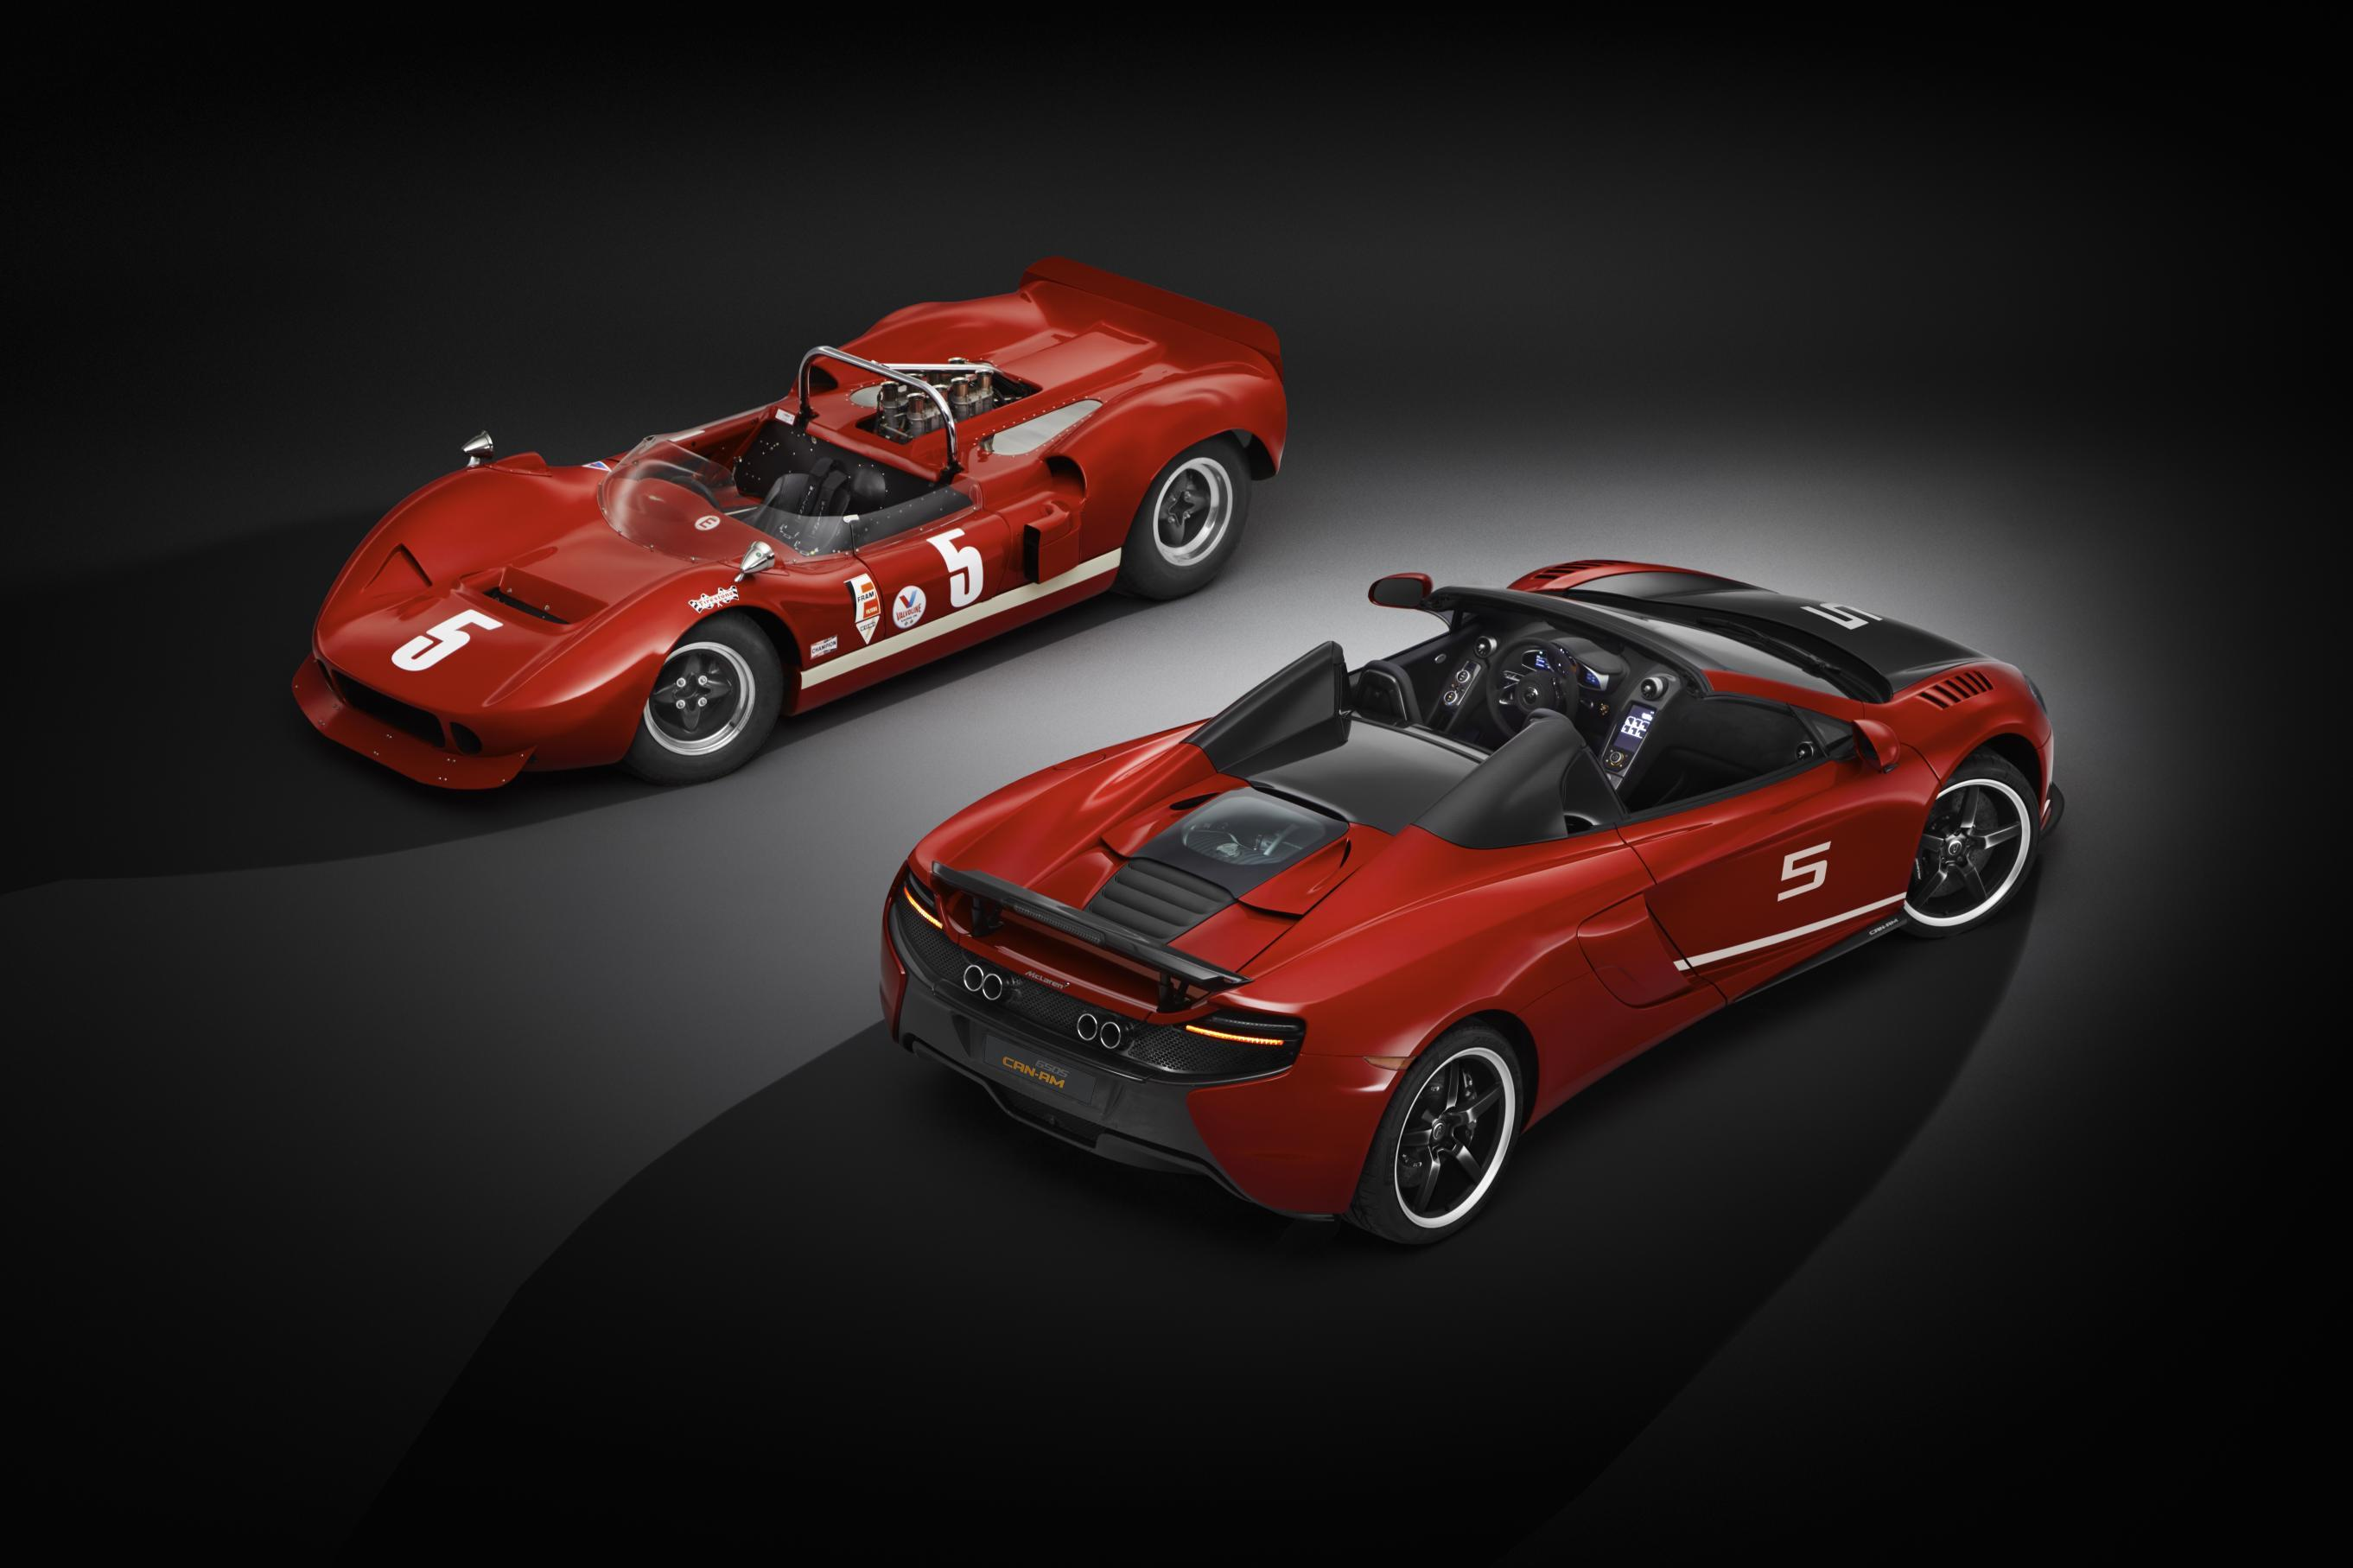 McLaren marks Can-Am's 50th anniversary with a special edition 650S